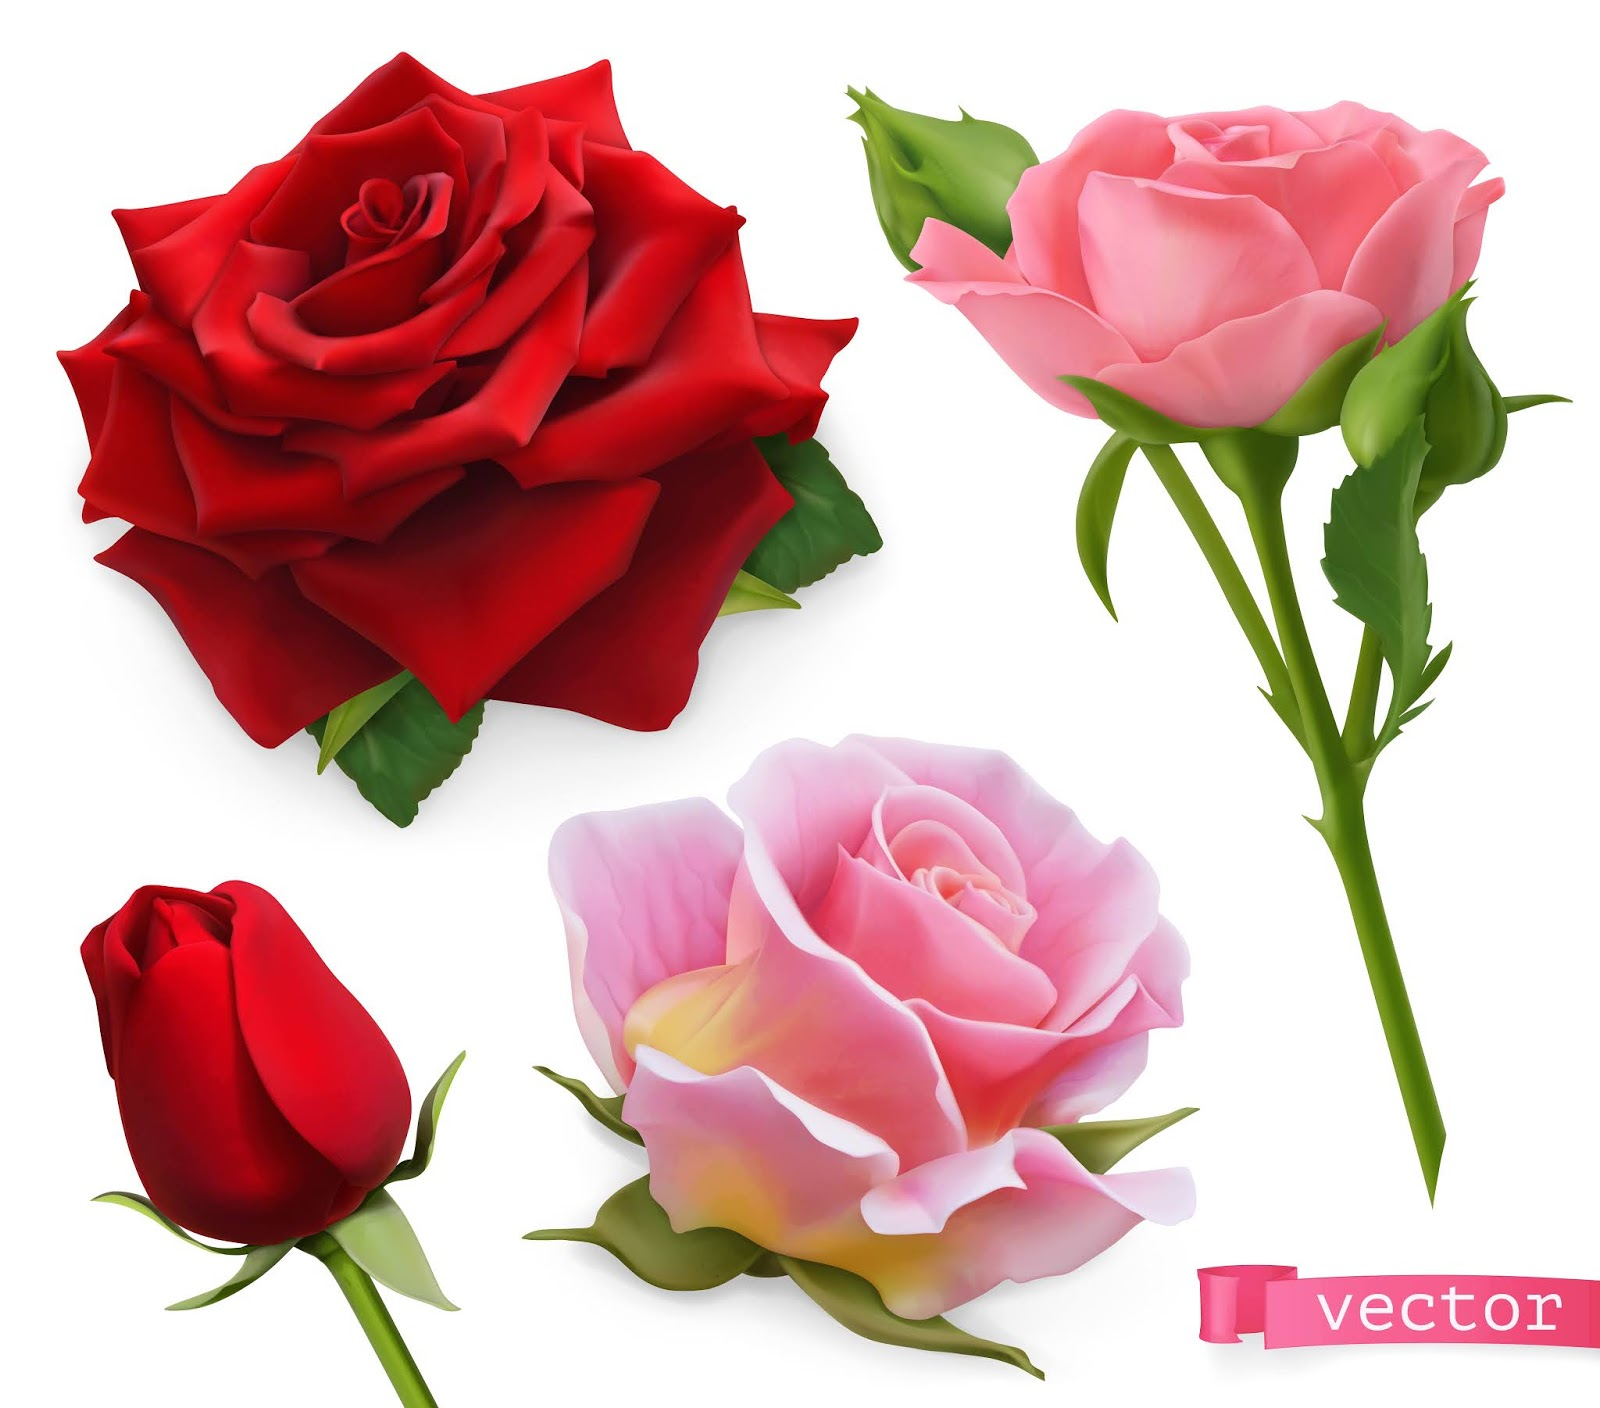 Red Pink Roses 3d Realistic Vector Set Free Download Vector CDR, AI, EPS and PNG Formats